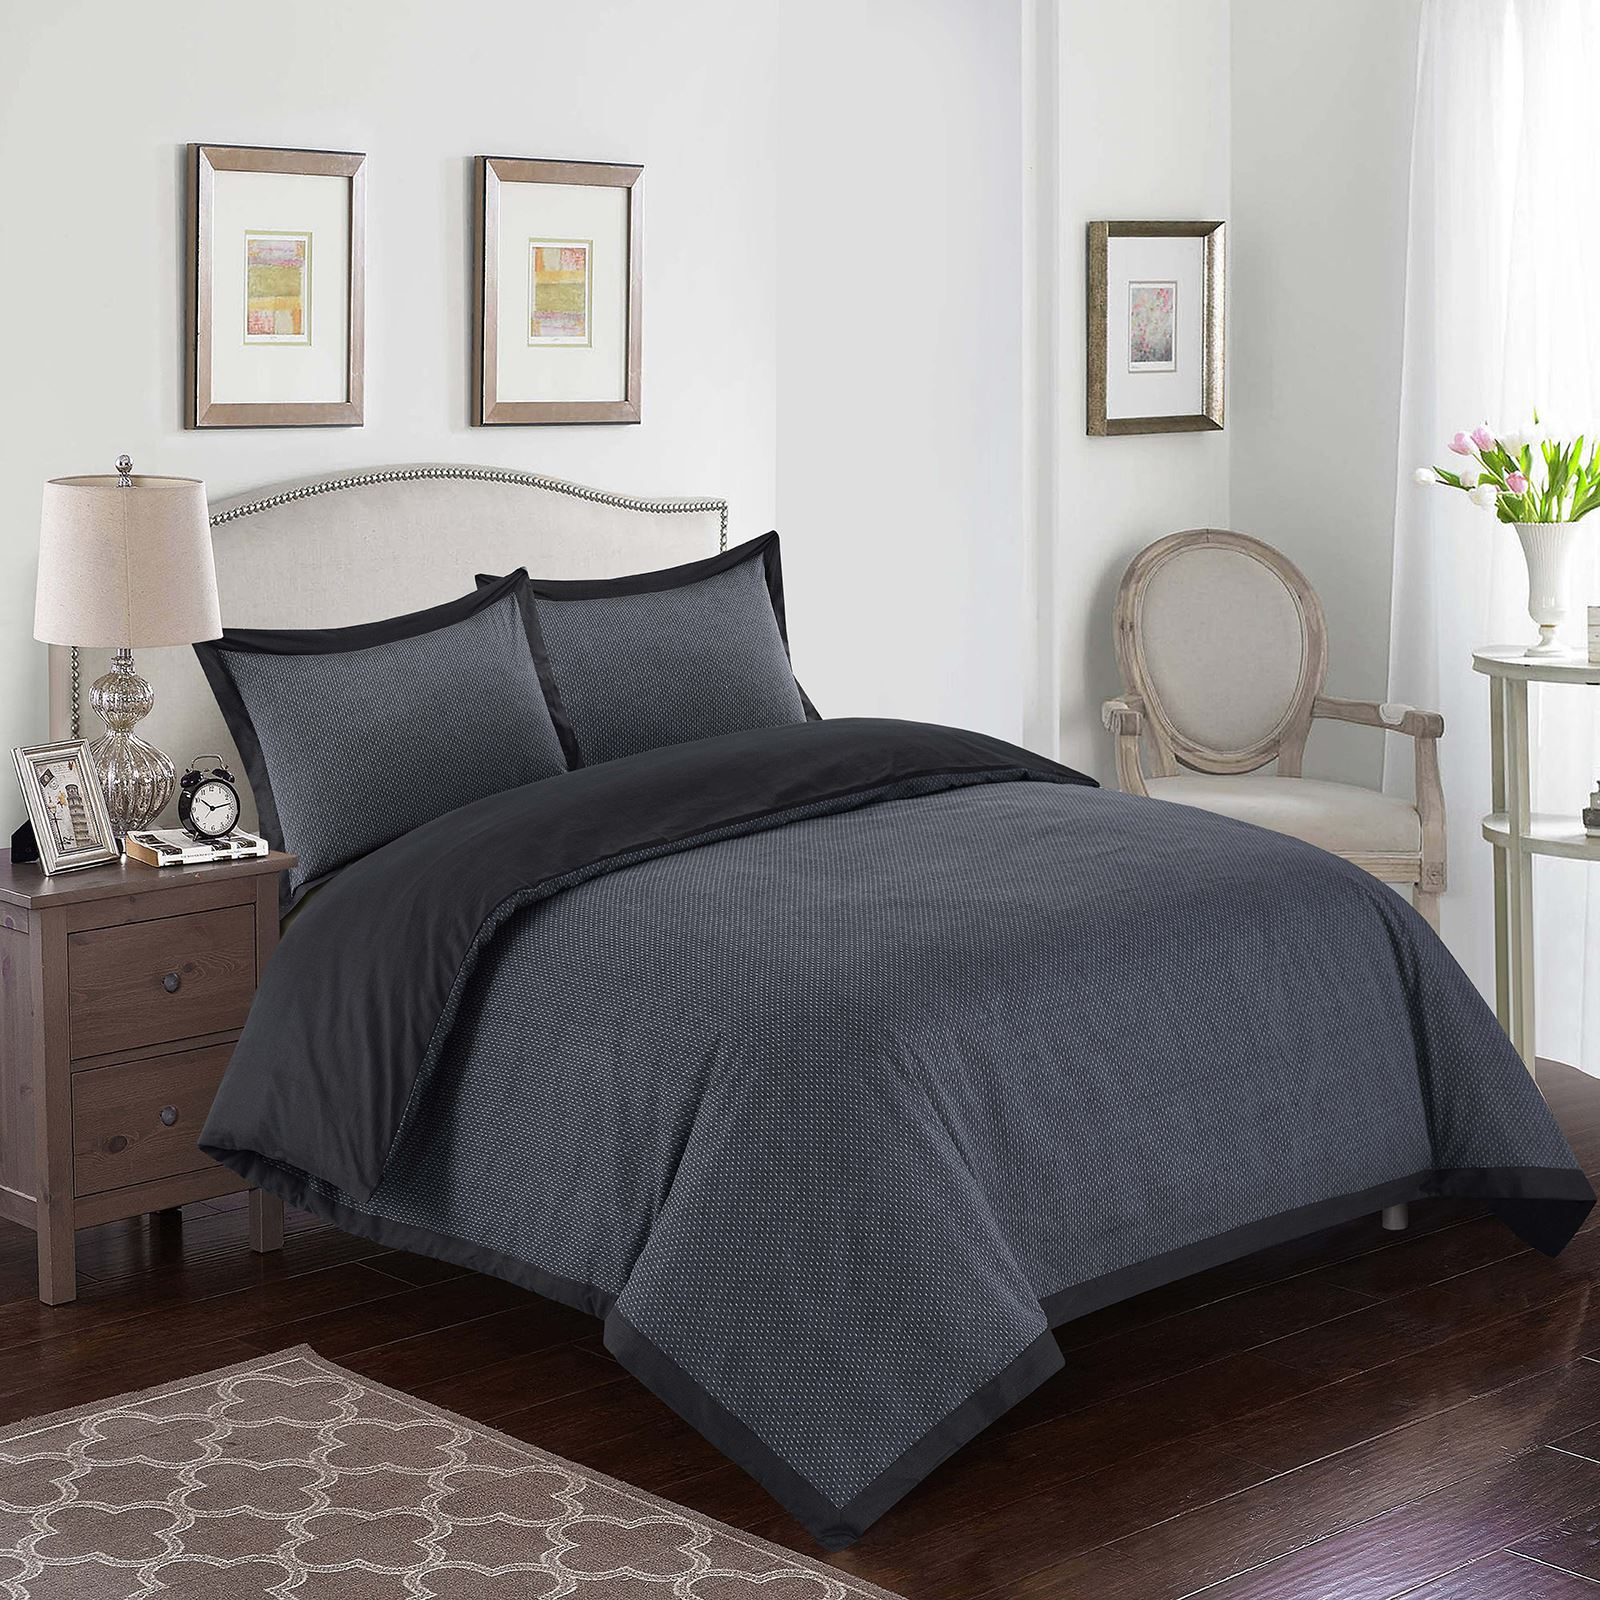 New Luxury 100/% Cotton Bedding Duvet Quilt Cover Set Soft Cosy Woven Dotted Grey